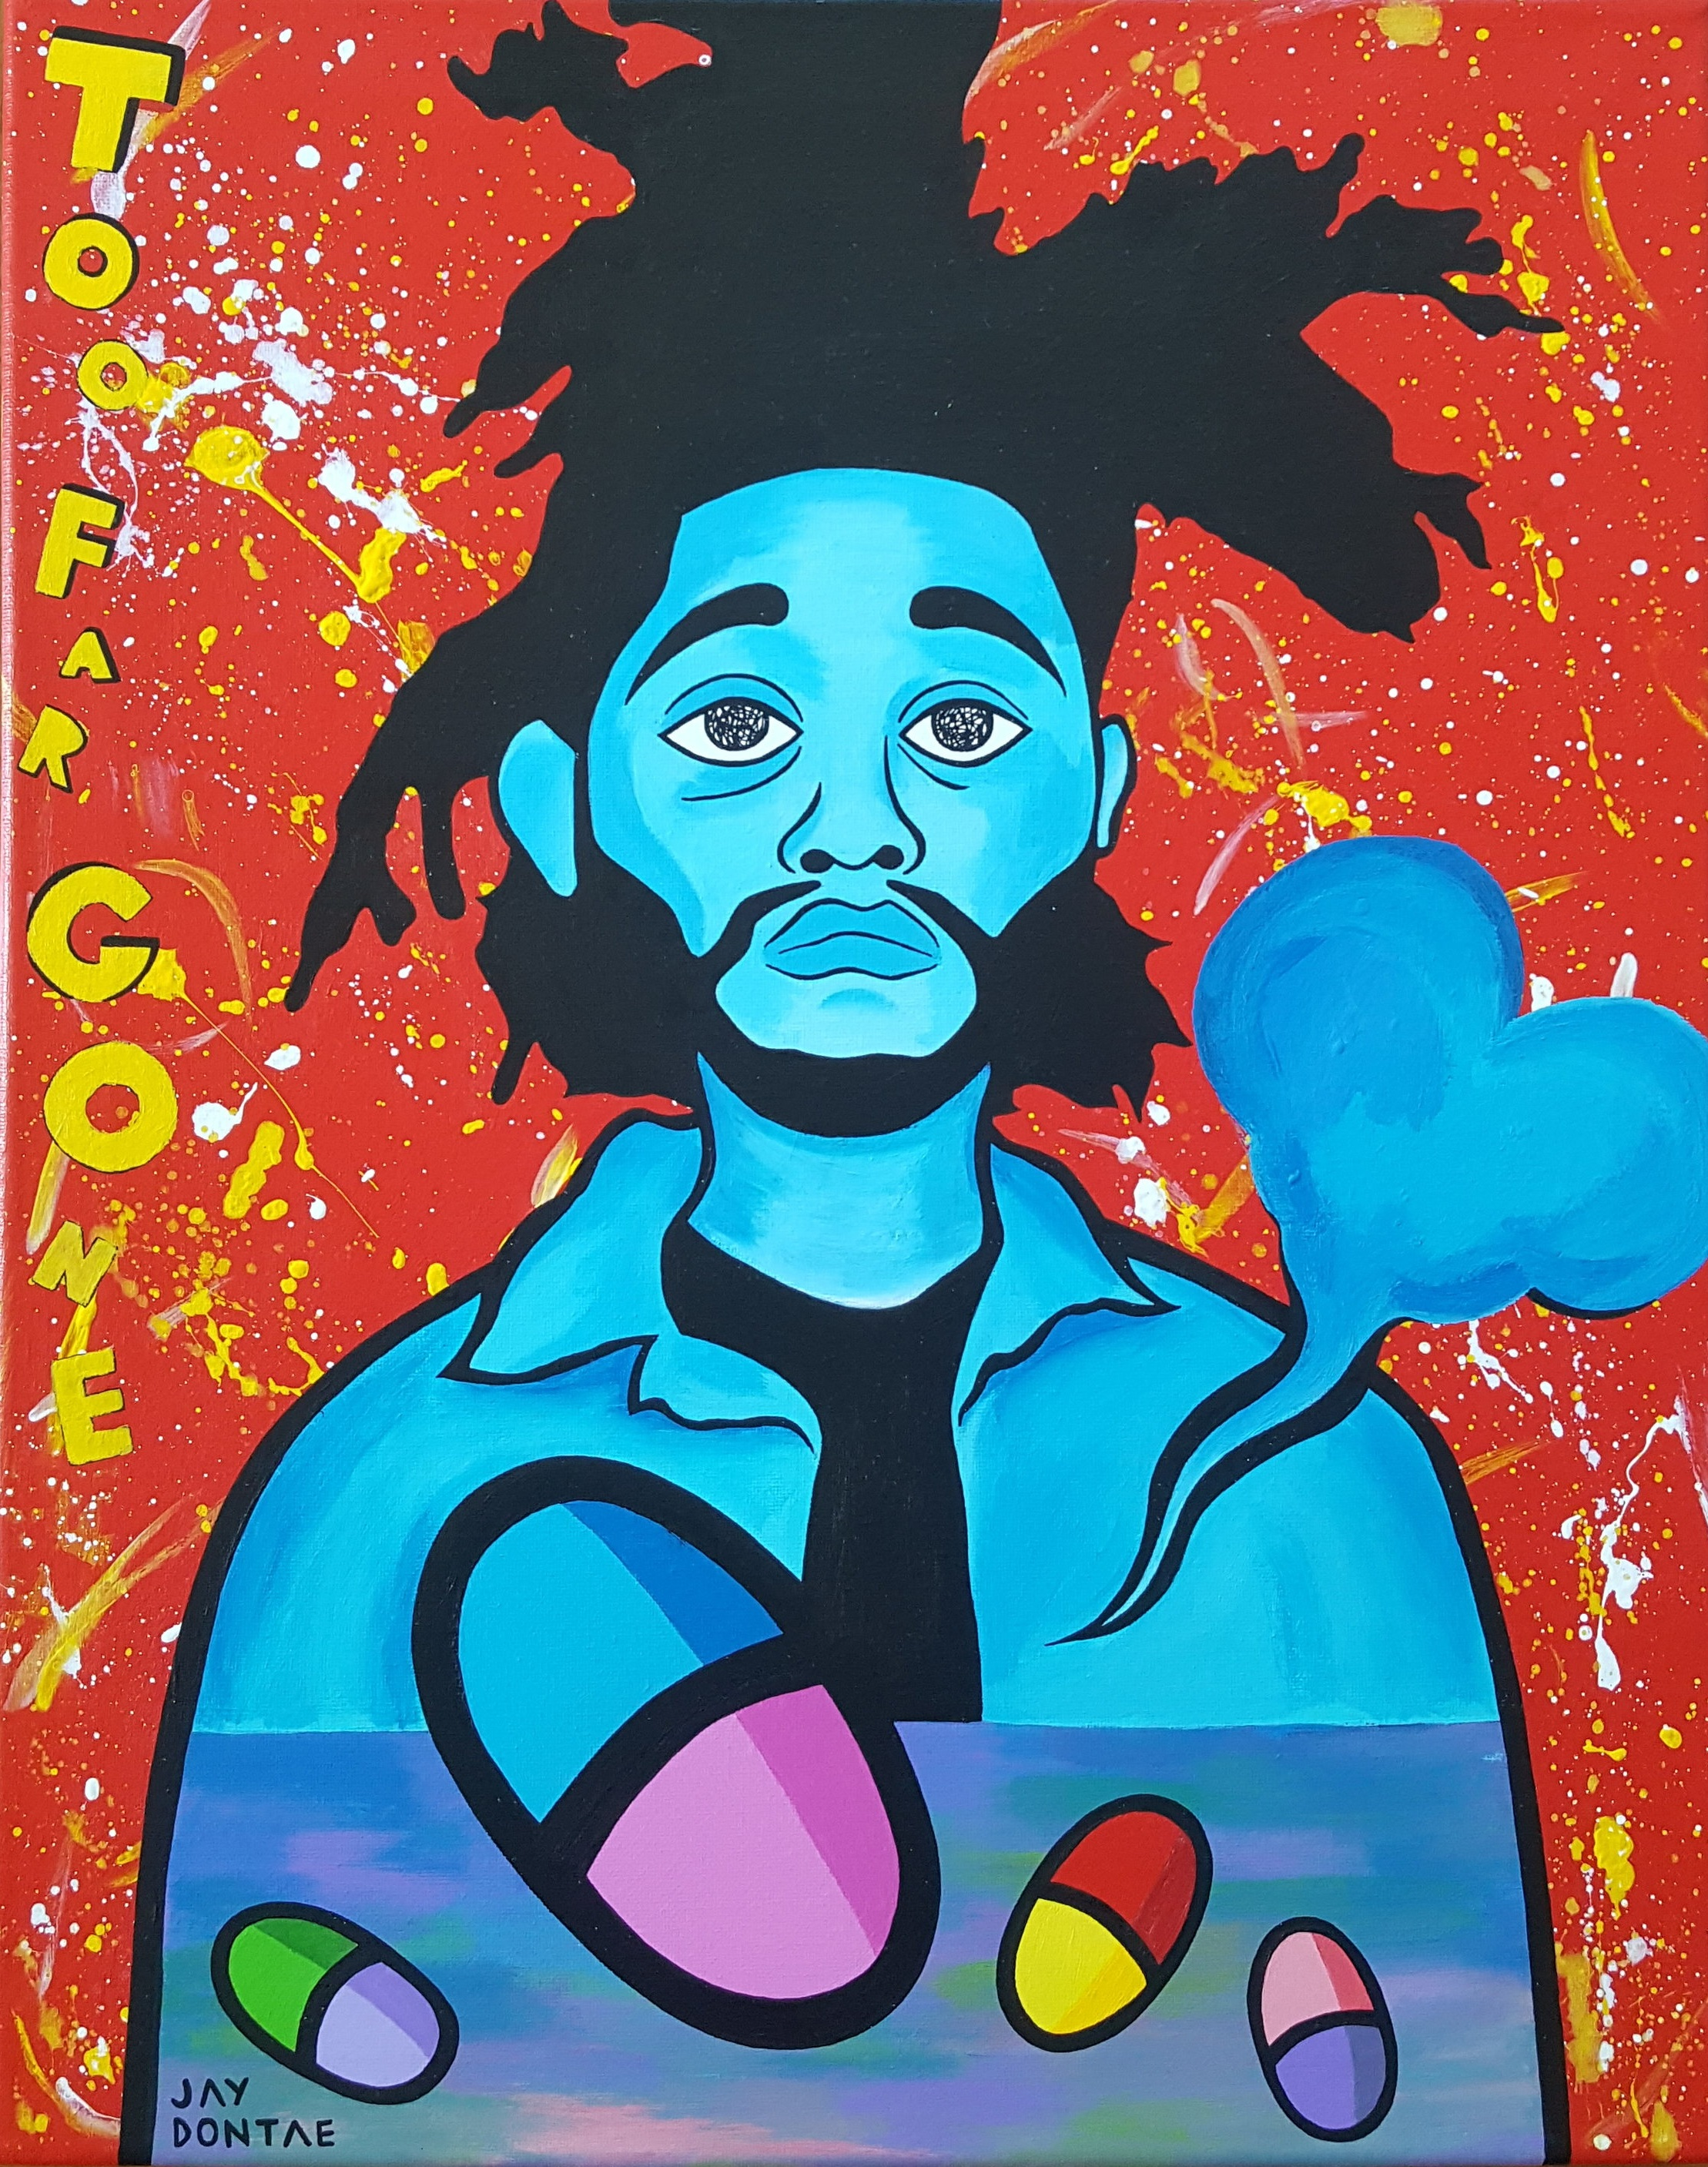 Acrylic on Canvas, Jay Dontae 2019